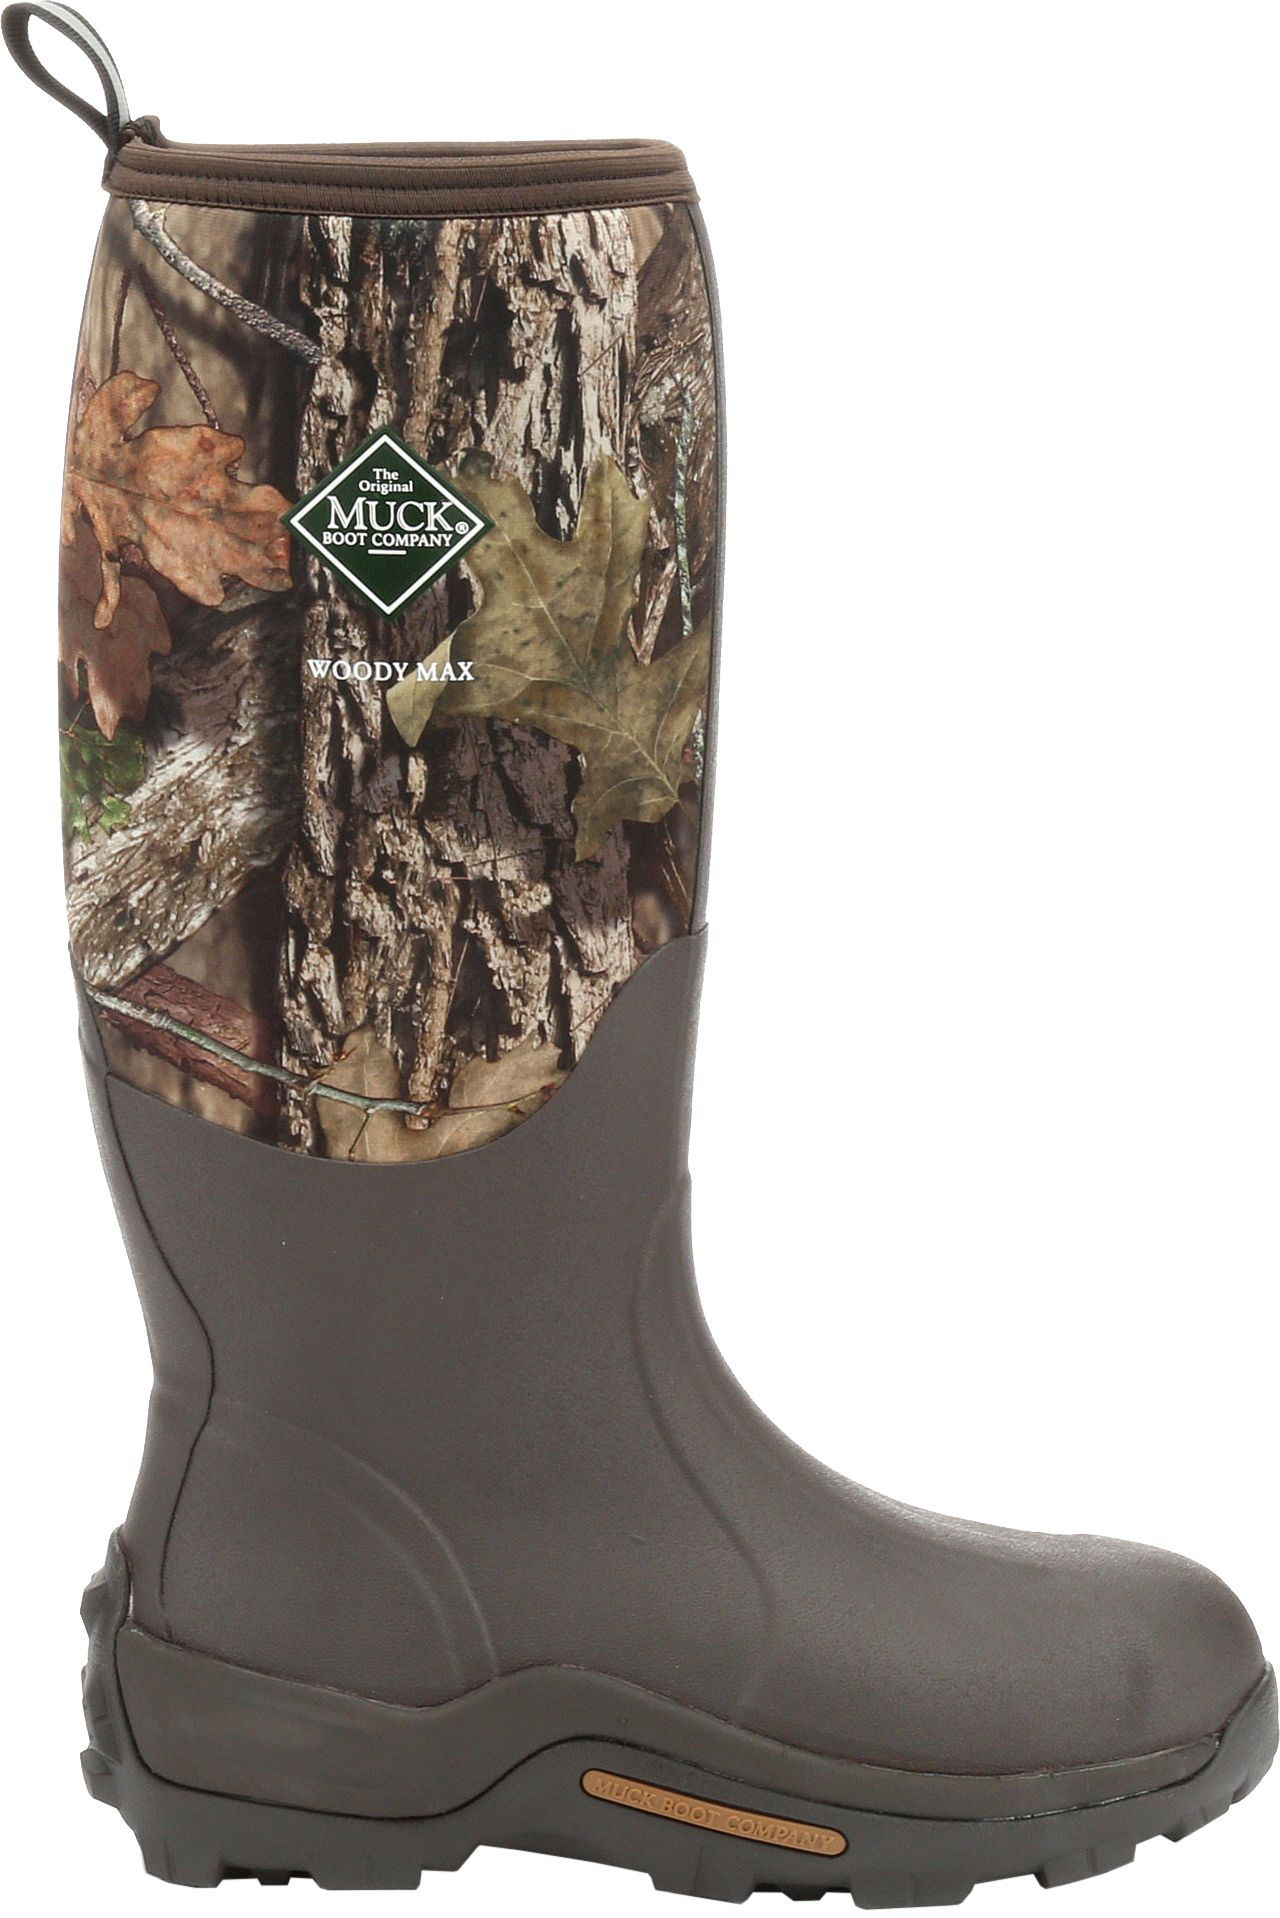 Muck Boots Men S Woody Max Insulated Rubber Hunting Boots